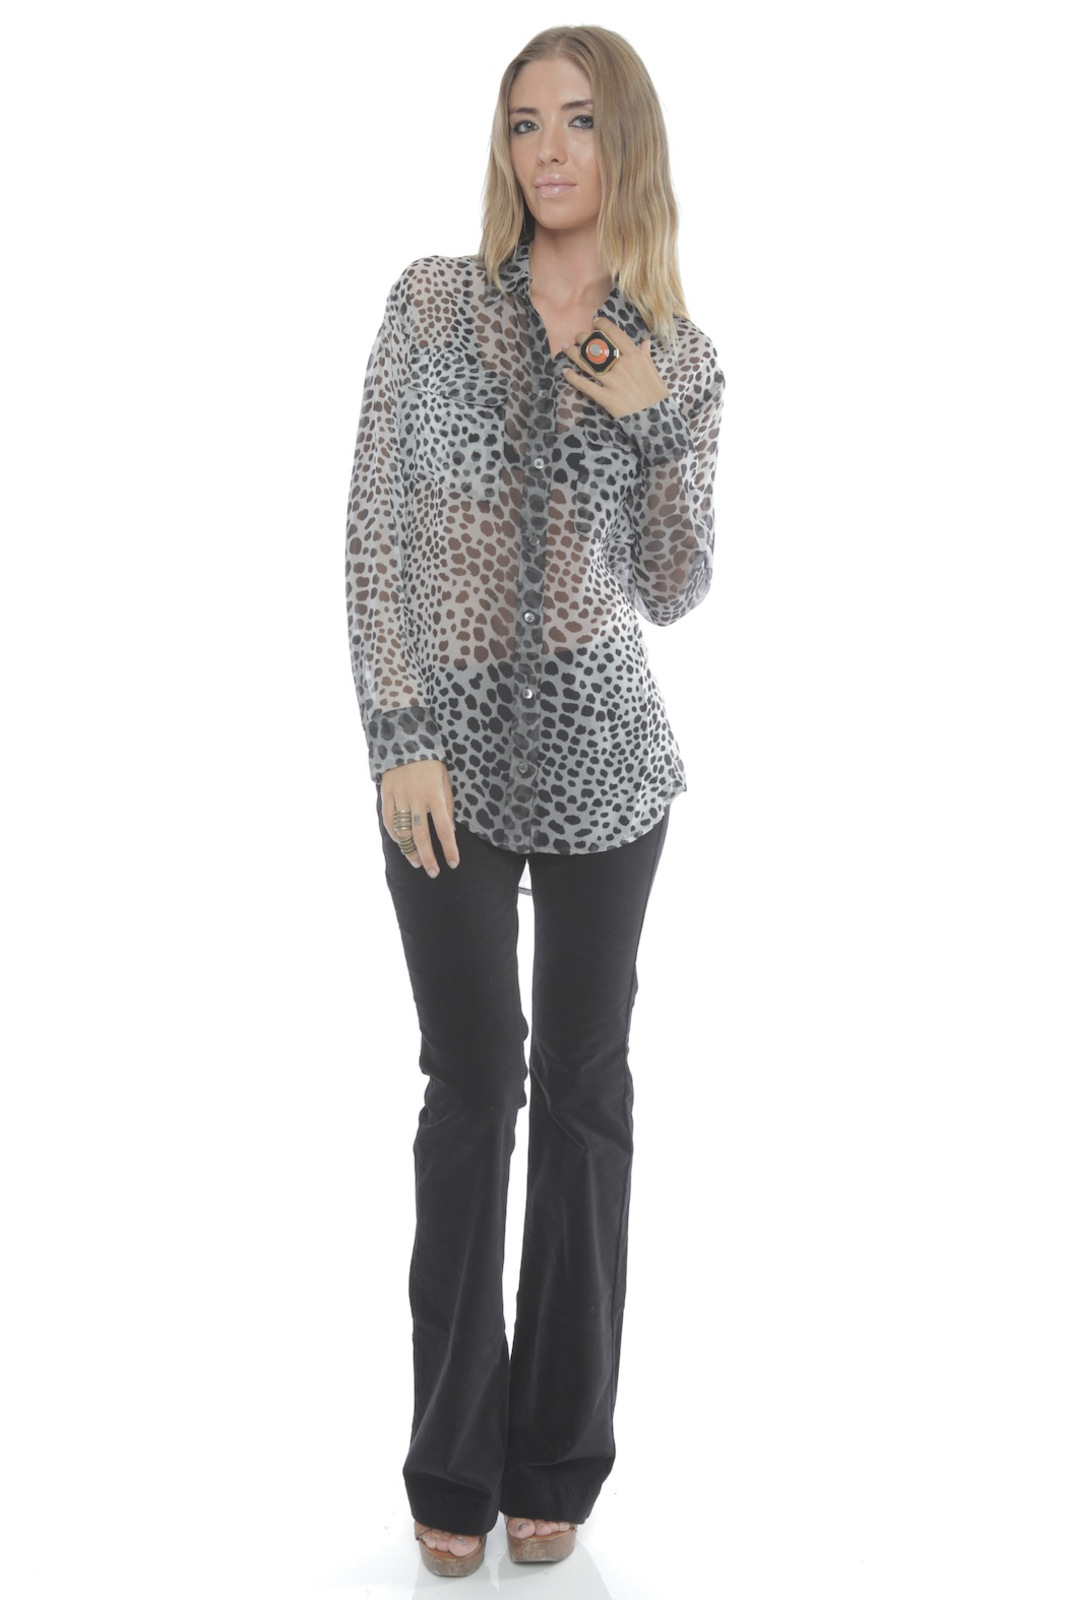 Equipment Silk Signature Blouse in Raw Cat Print - Front Full Image